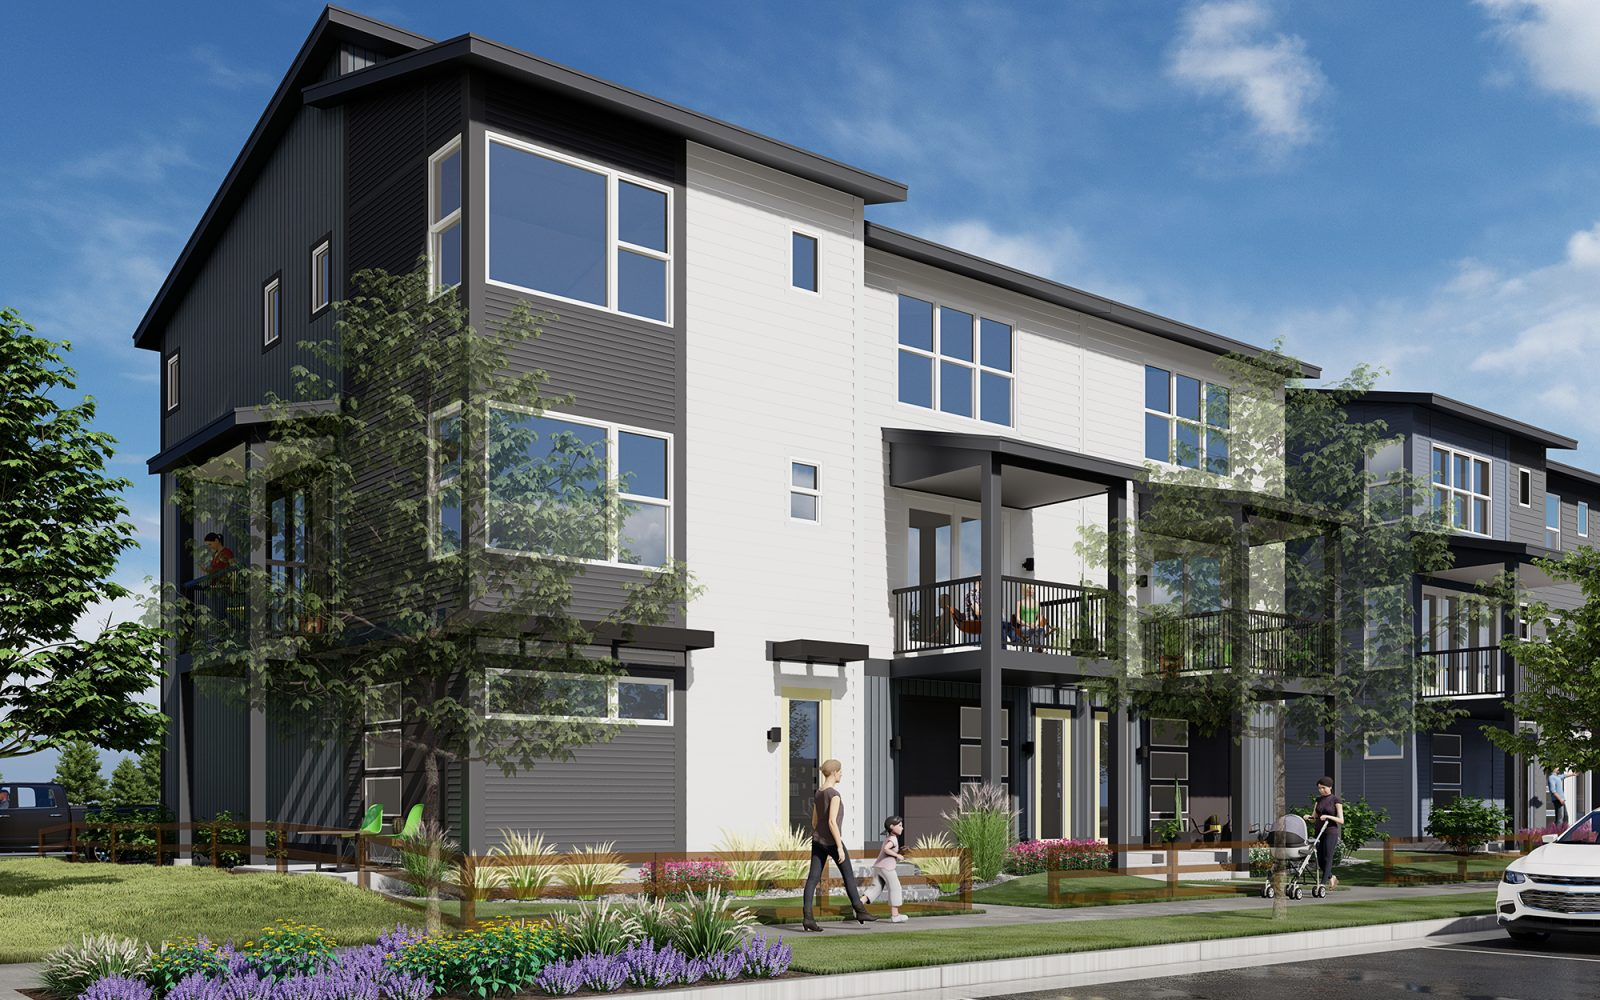 Baseline DoMore Rows: Exterior Rendering